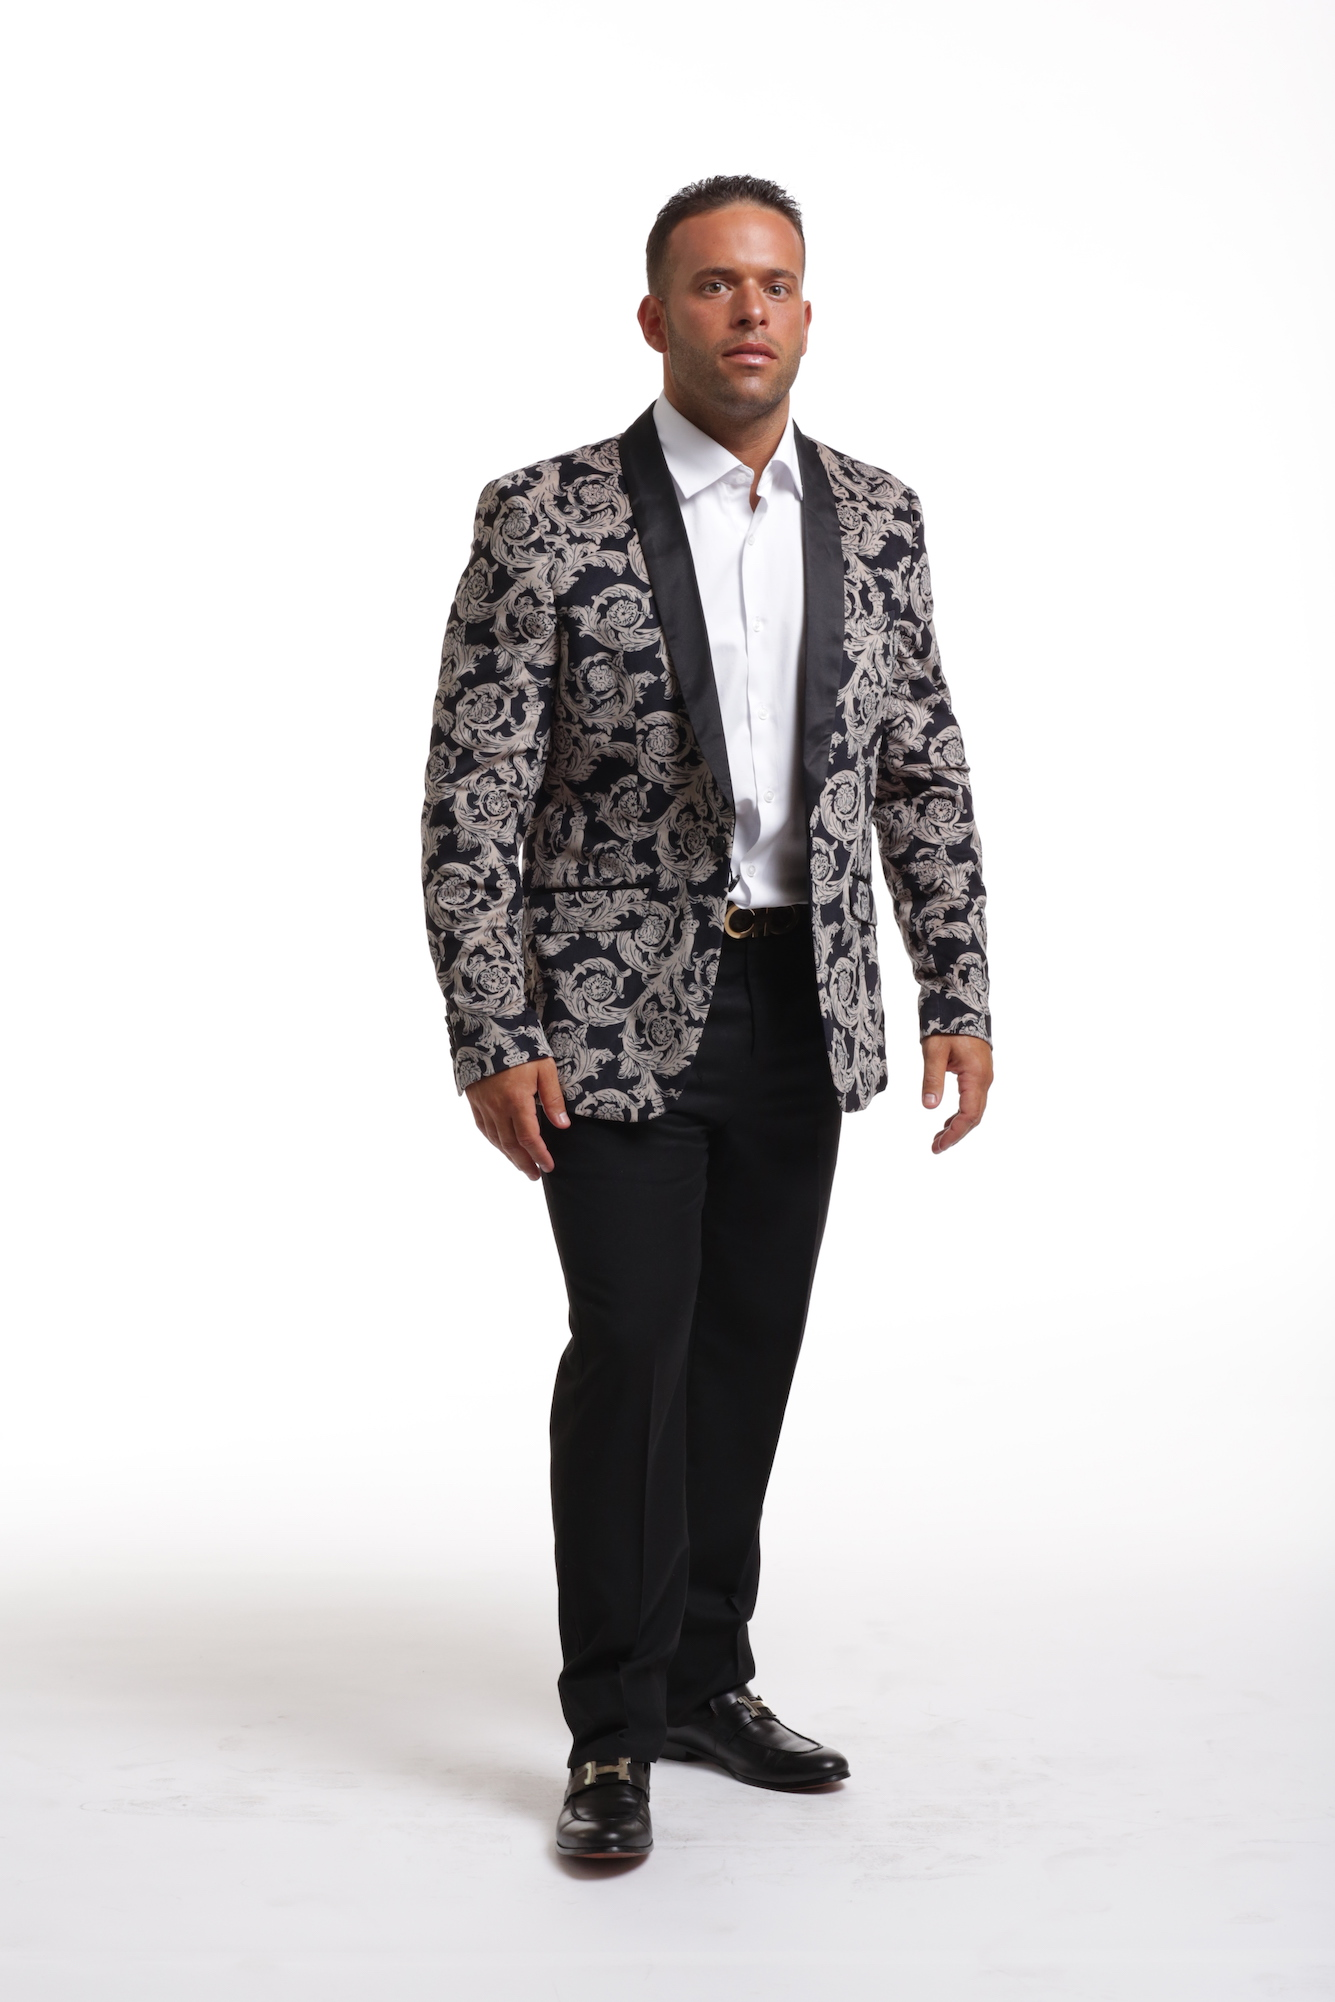 Royal Floral Men's Blazer/Jacket CEBBW1716M